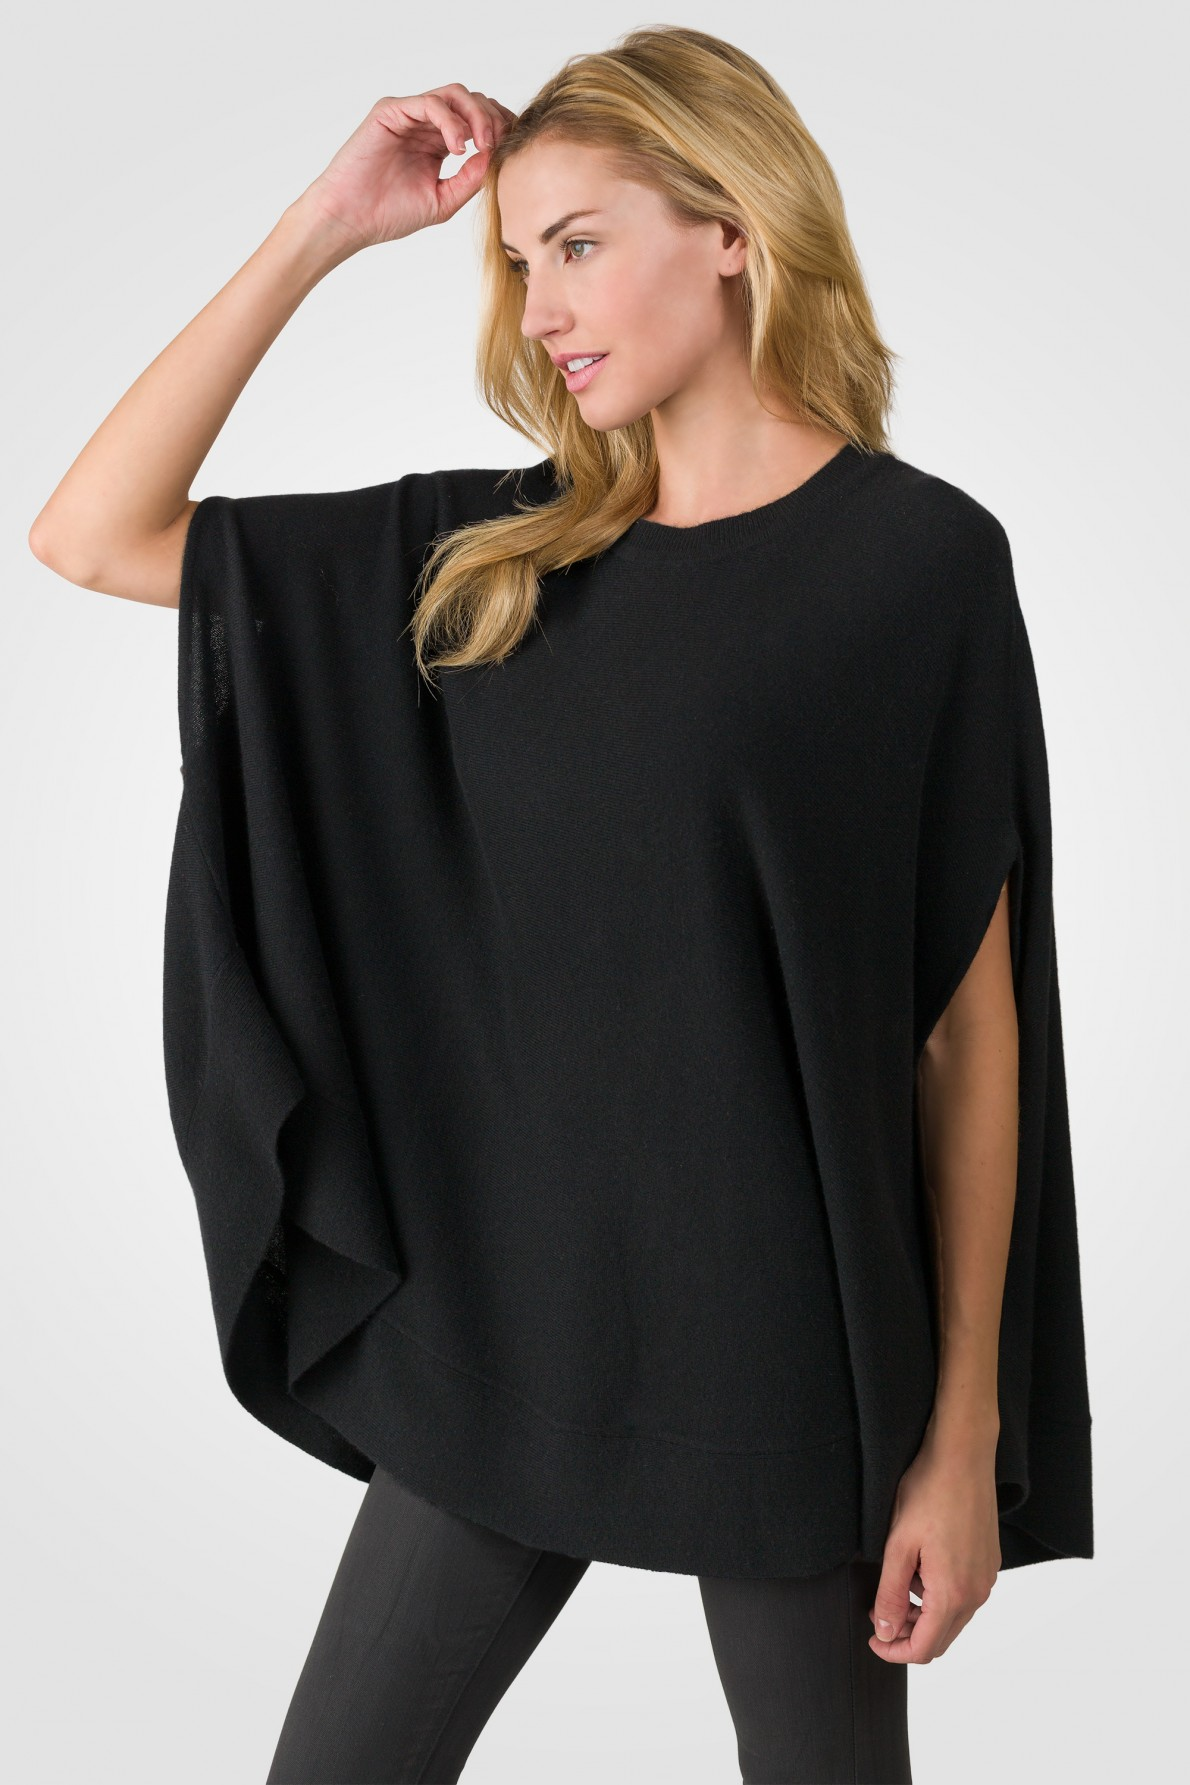 black cashmere oversized laid-back poncho sweater left side view MKAXILZ